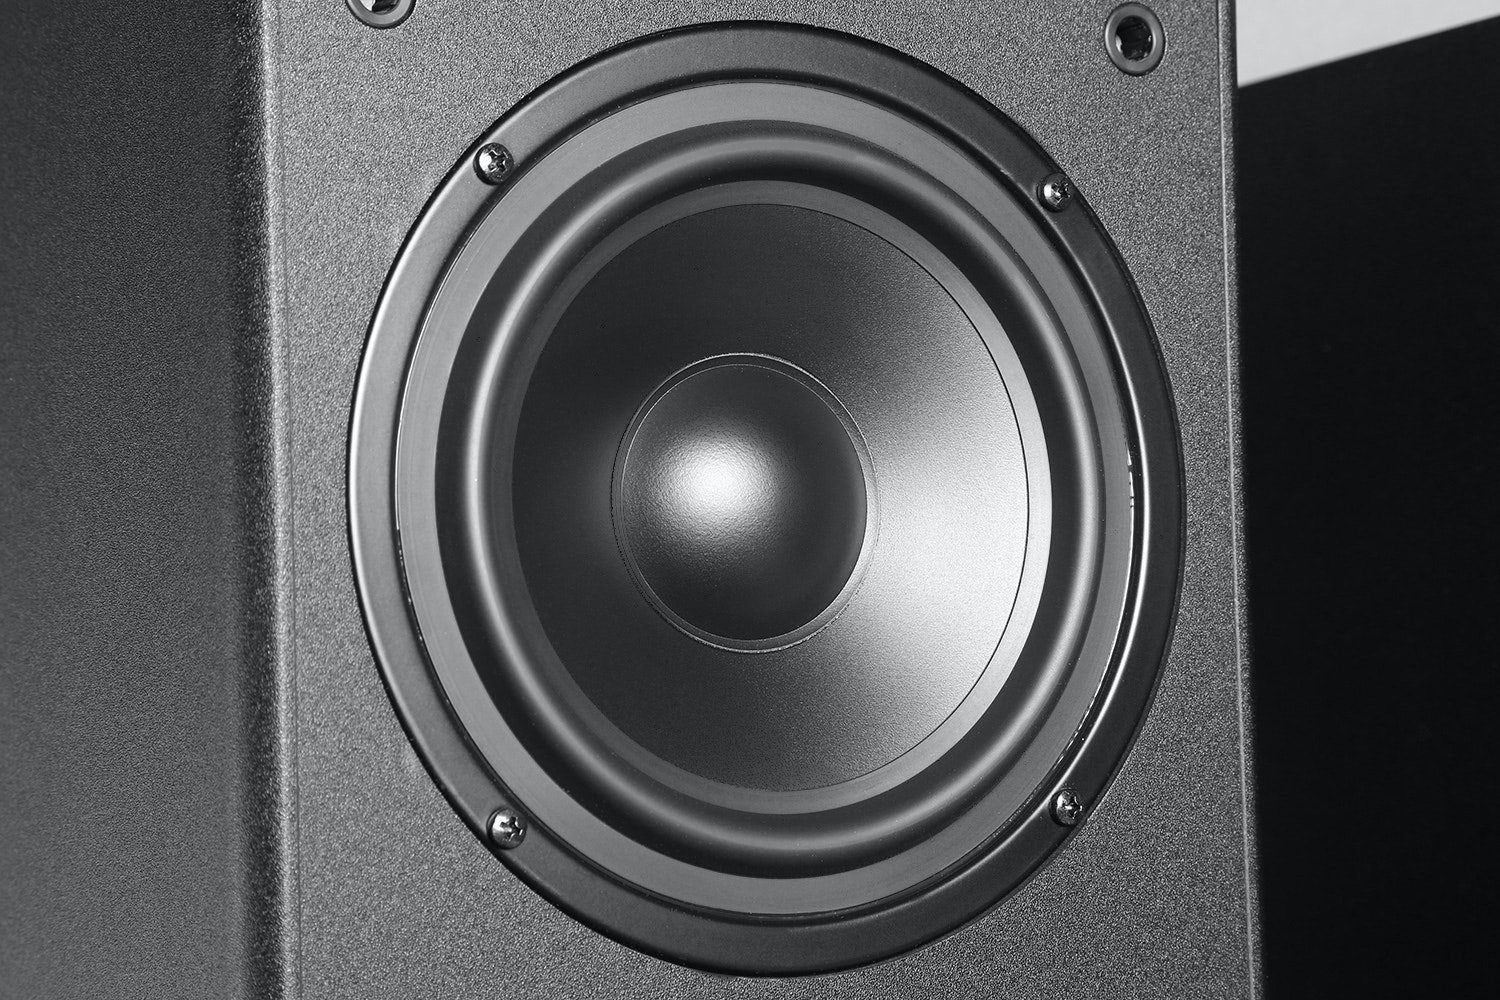 Monoprice Dual 6.5 Inch 2-Way Tower Speakers